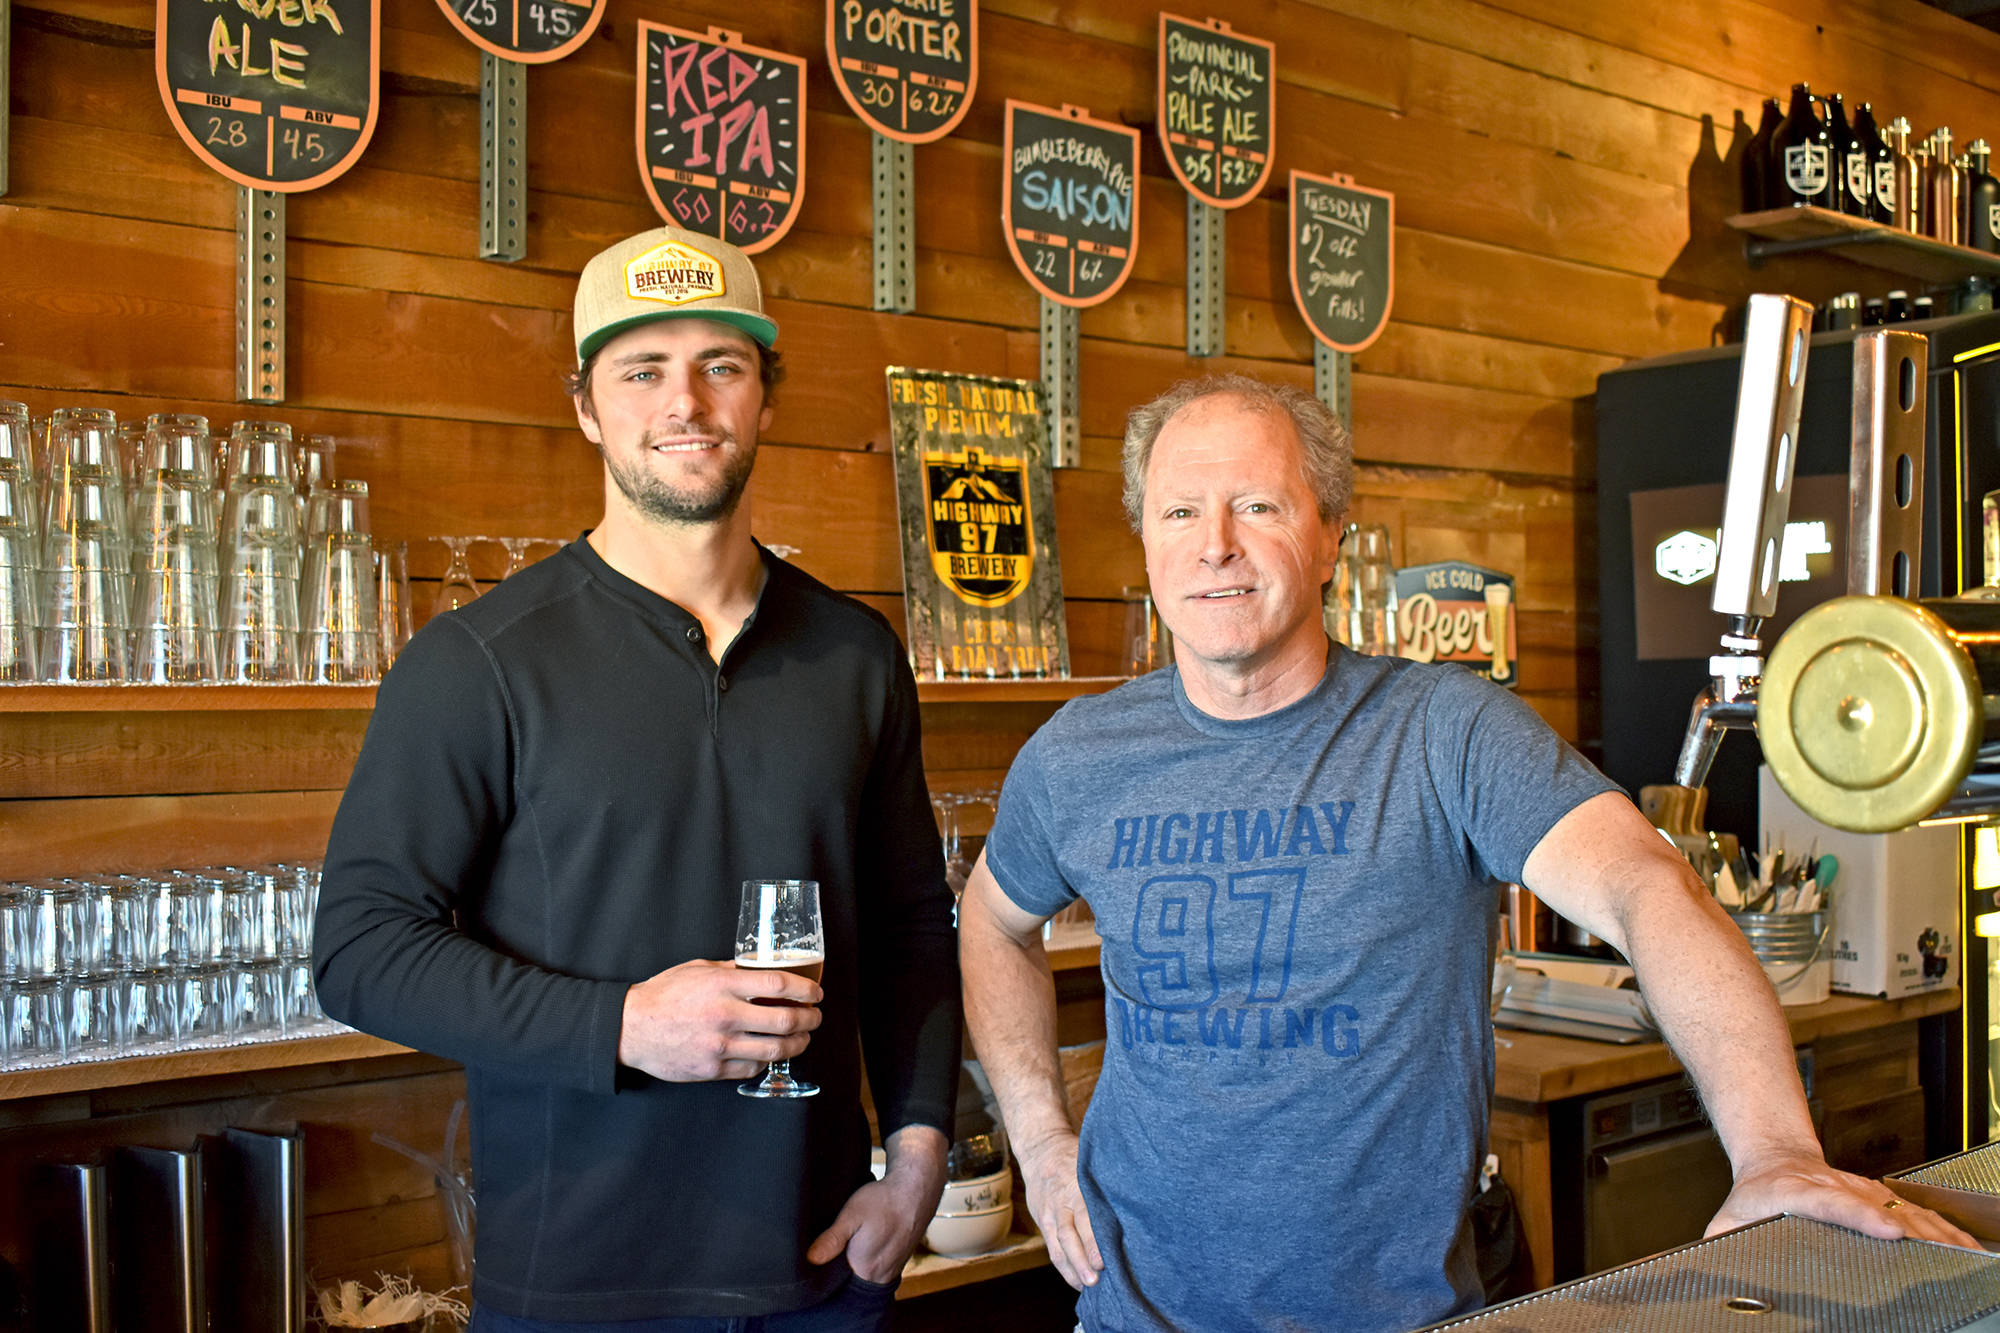 Highway 97 Brewing owners Nick and John Kapusty are excited about moving to downtown Penticton at 200 Ellis St. with a bigger taproom and and patio. (Western News file photo)